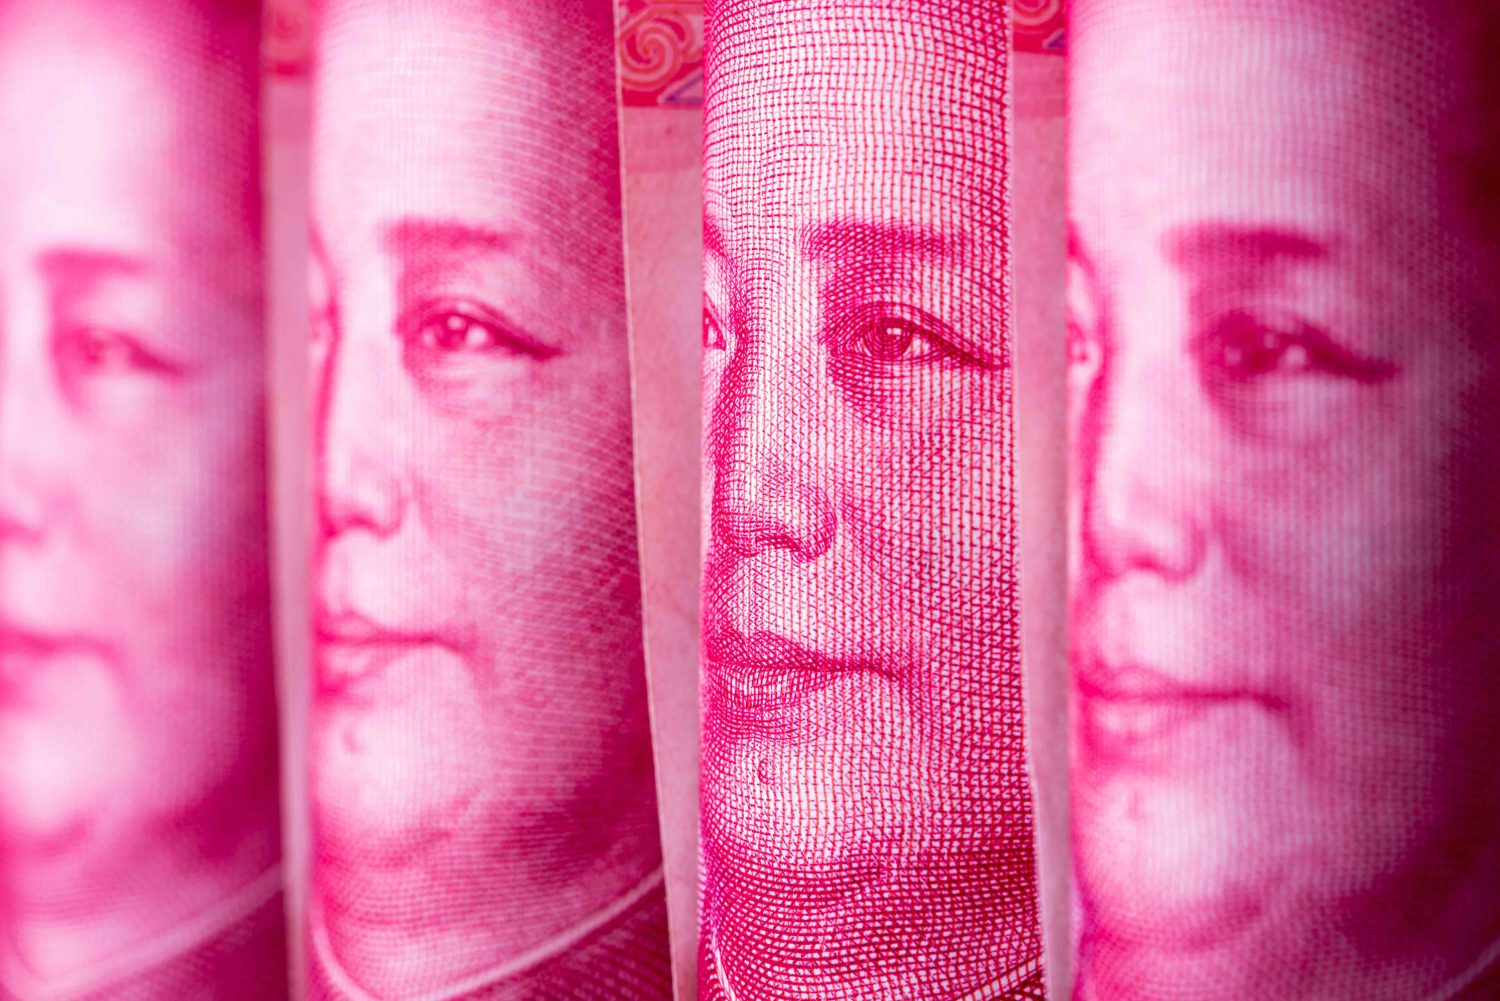 Chinese Ex-Banker Says Digital Currency Should Replace Fiat Money